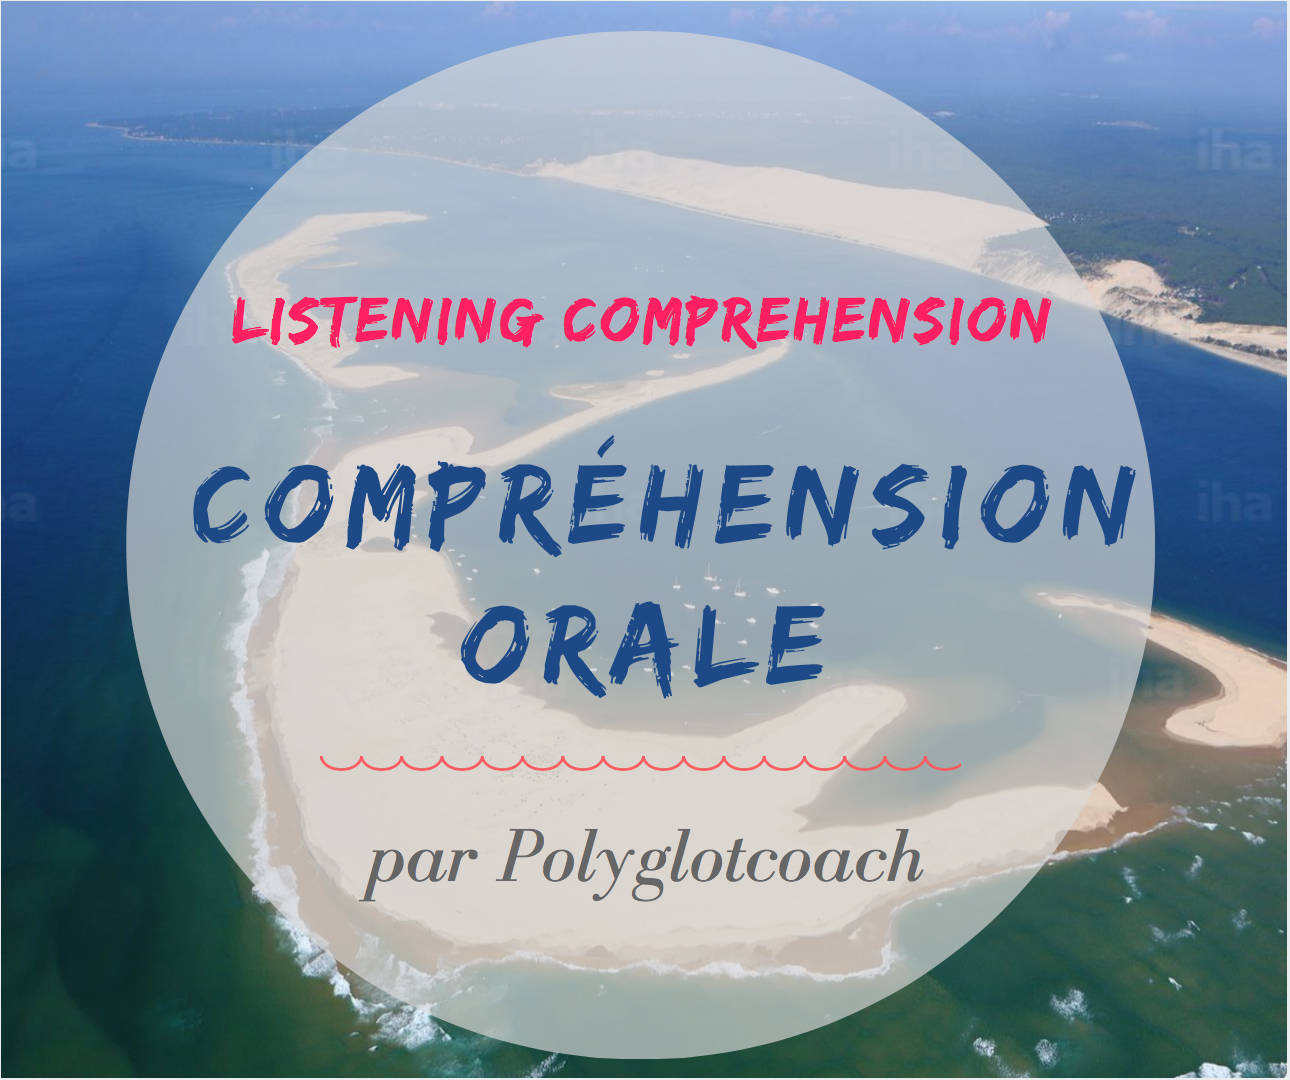 compréhension orale - listening comprehension French -Polyglotcoach.png